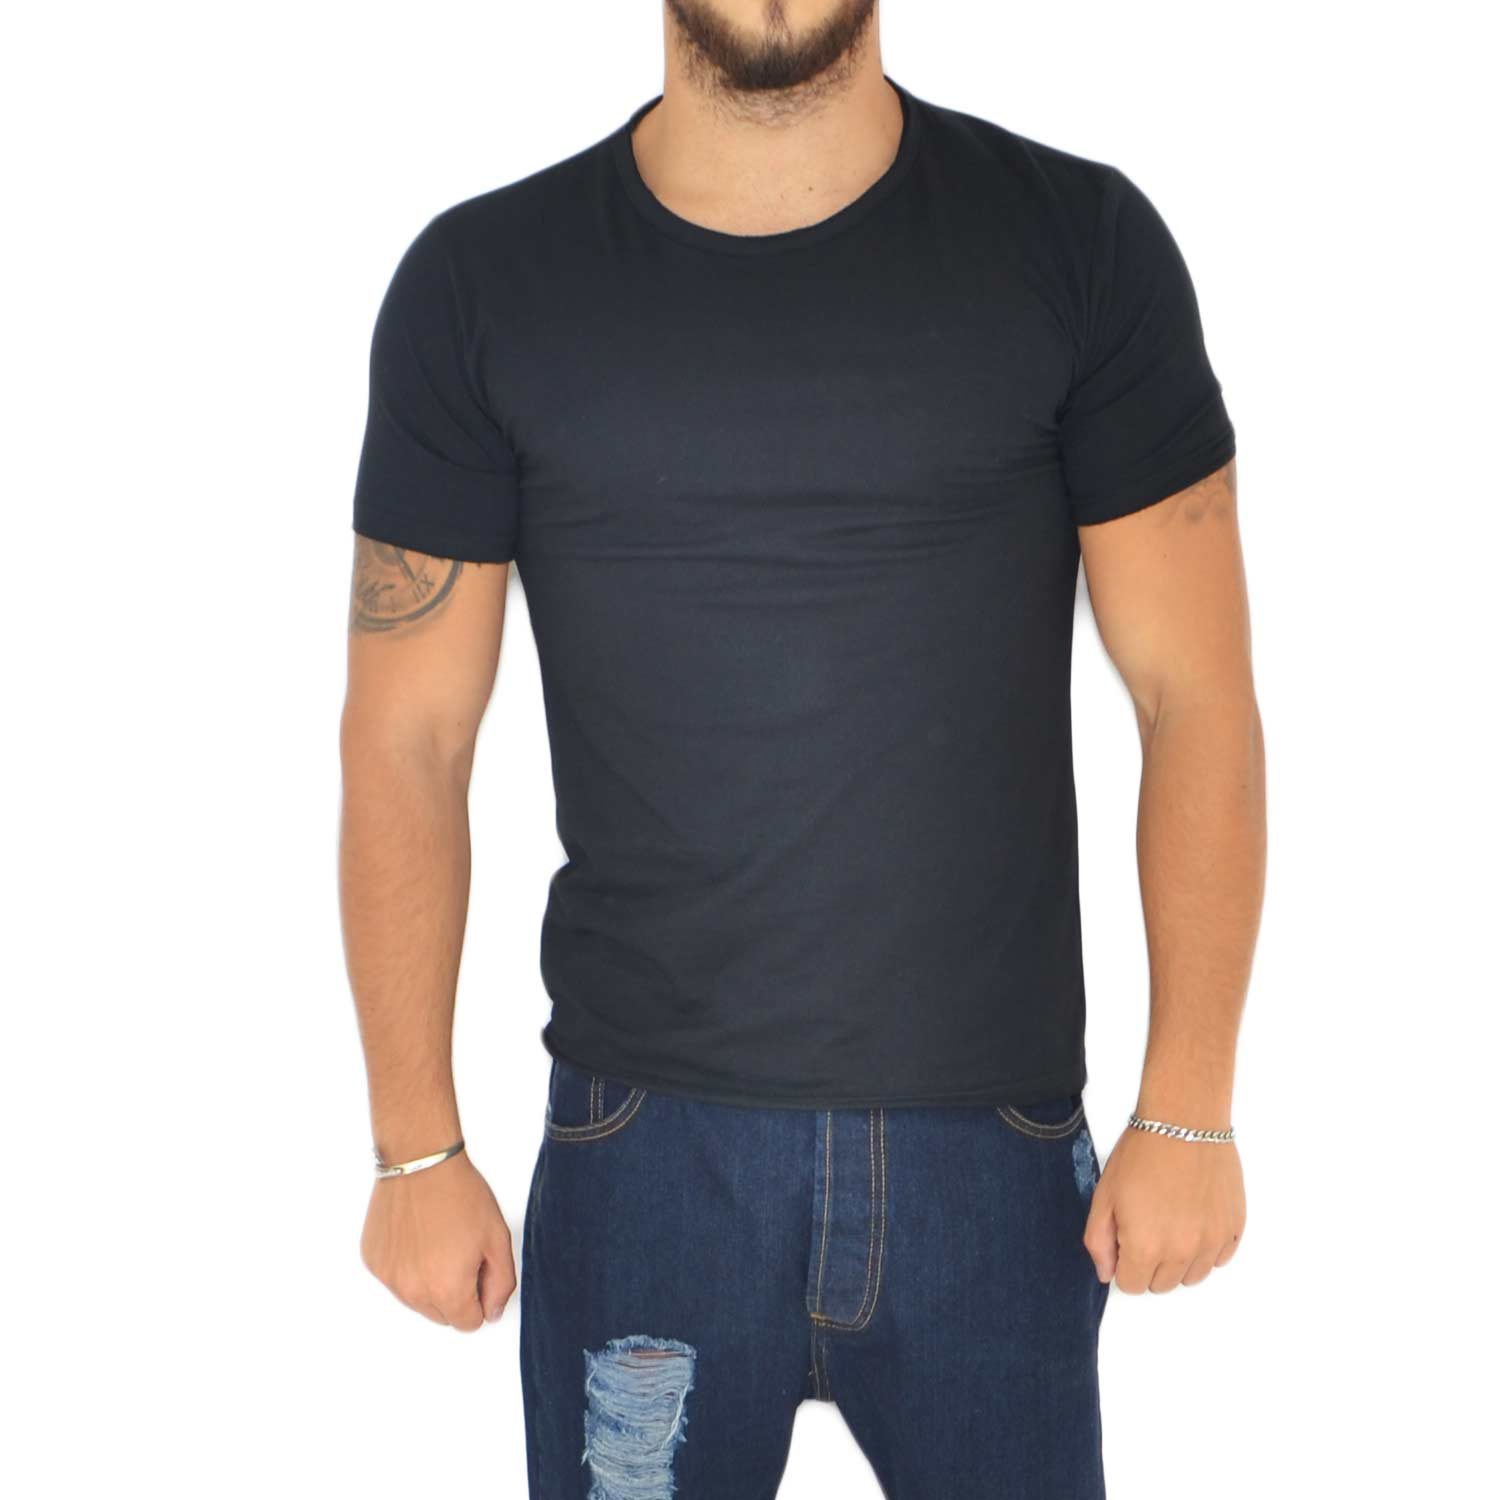 T- shirt basic uomo in cotone elastico nero semplice slim fit girocollo con cucitura in tinta made in italy